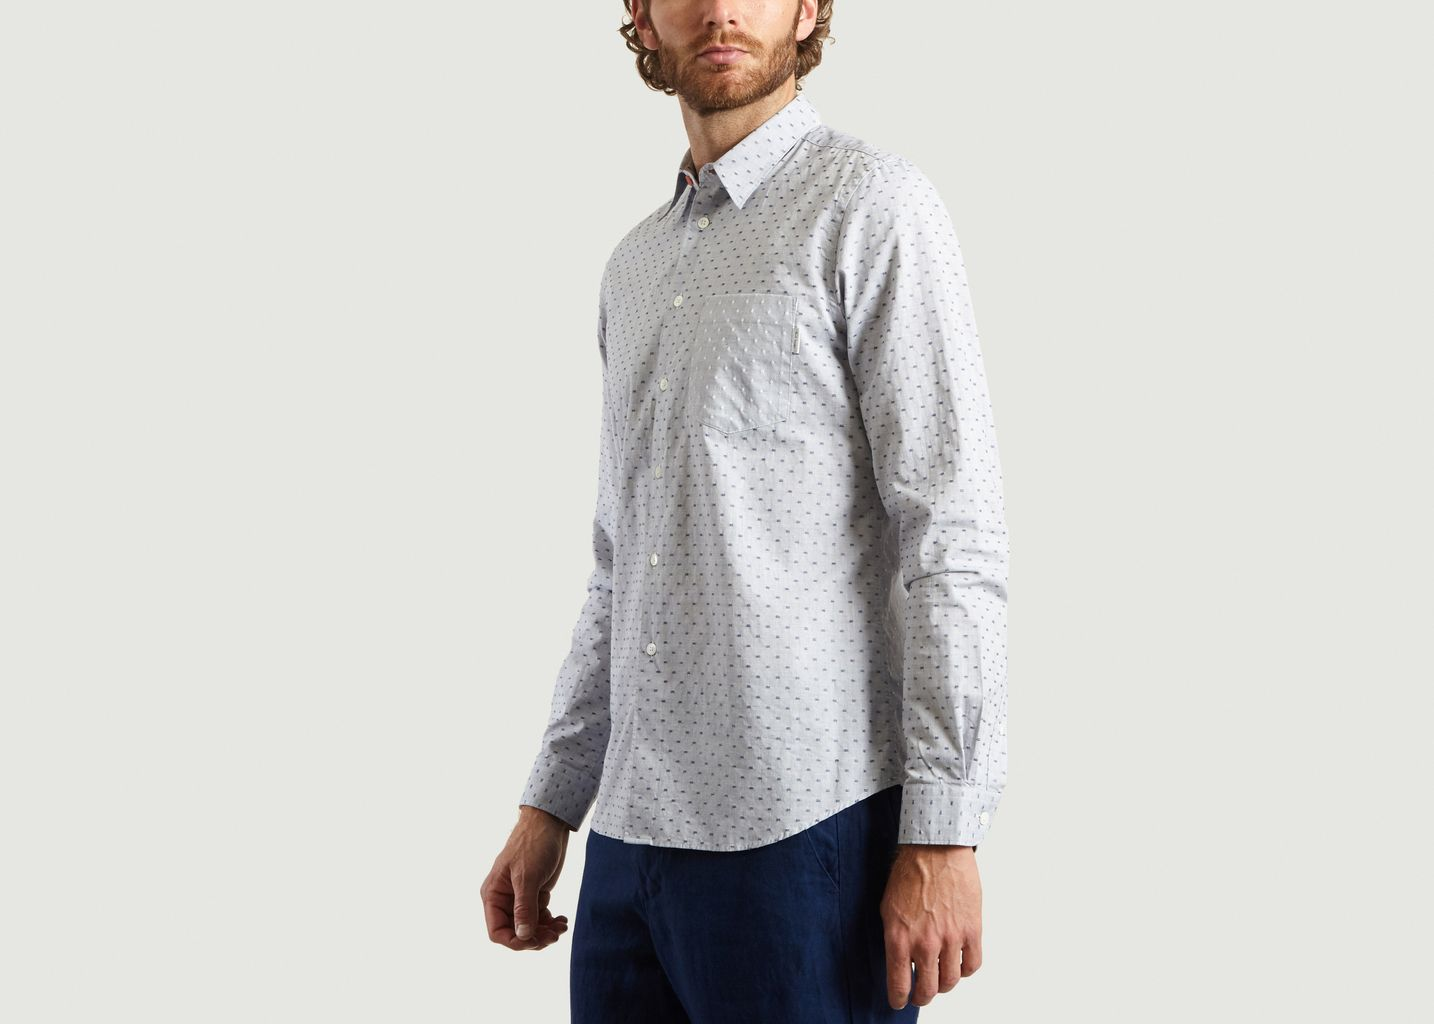 Chemise Tailored Fit Imprimé - PS by PAUL SMITH